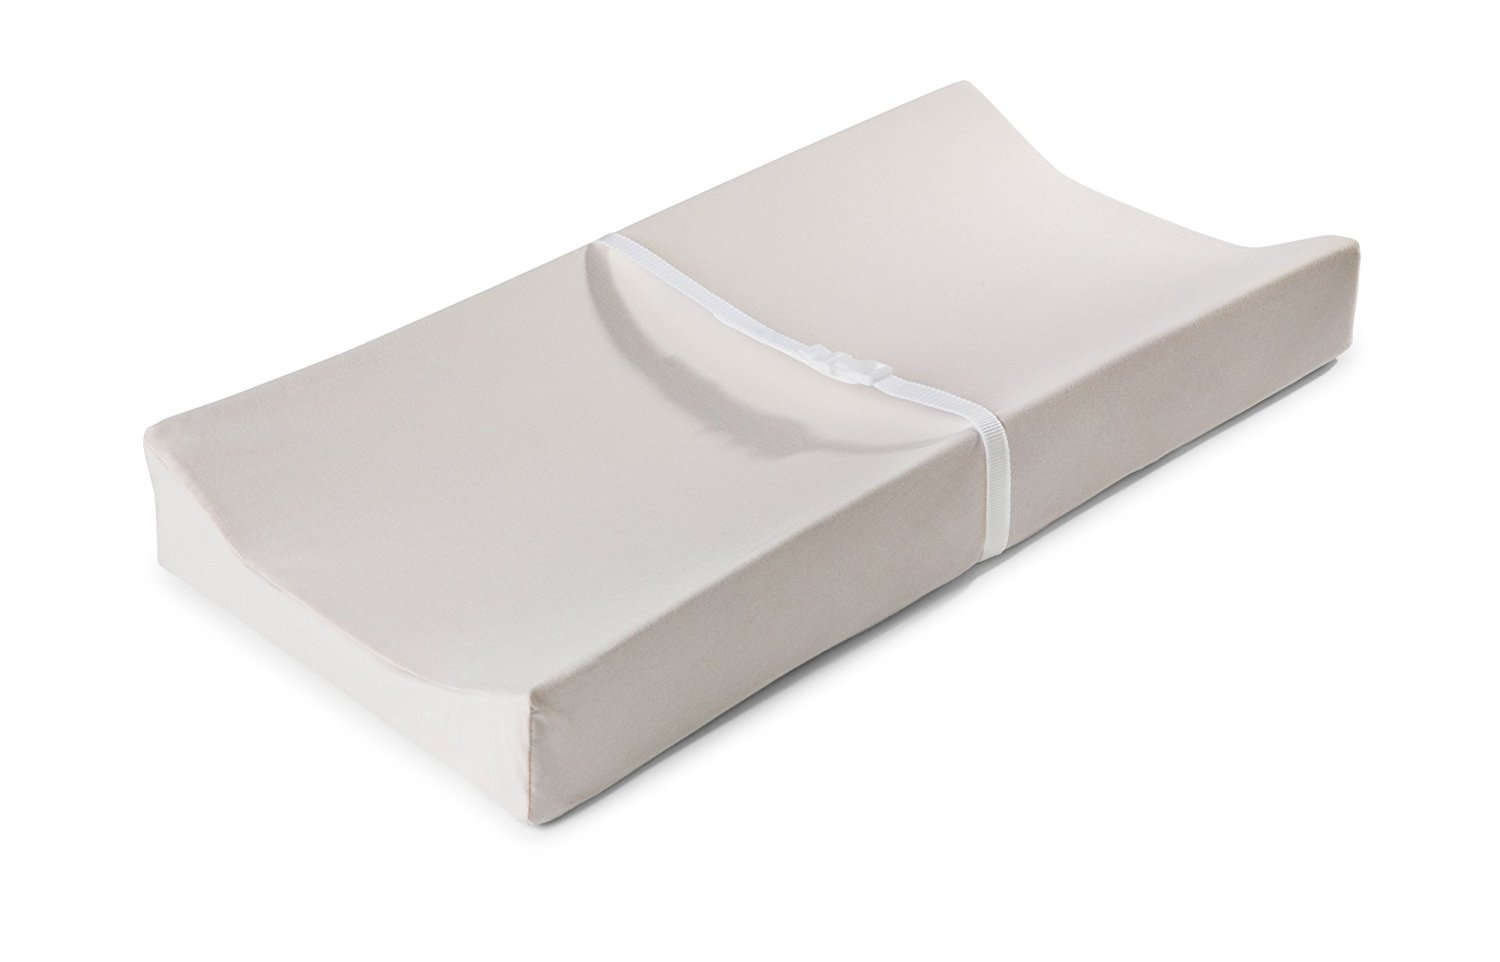 Moonlight Slumber Two-Sided Contoured Changing Pad